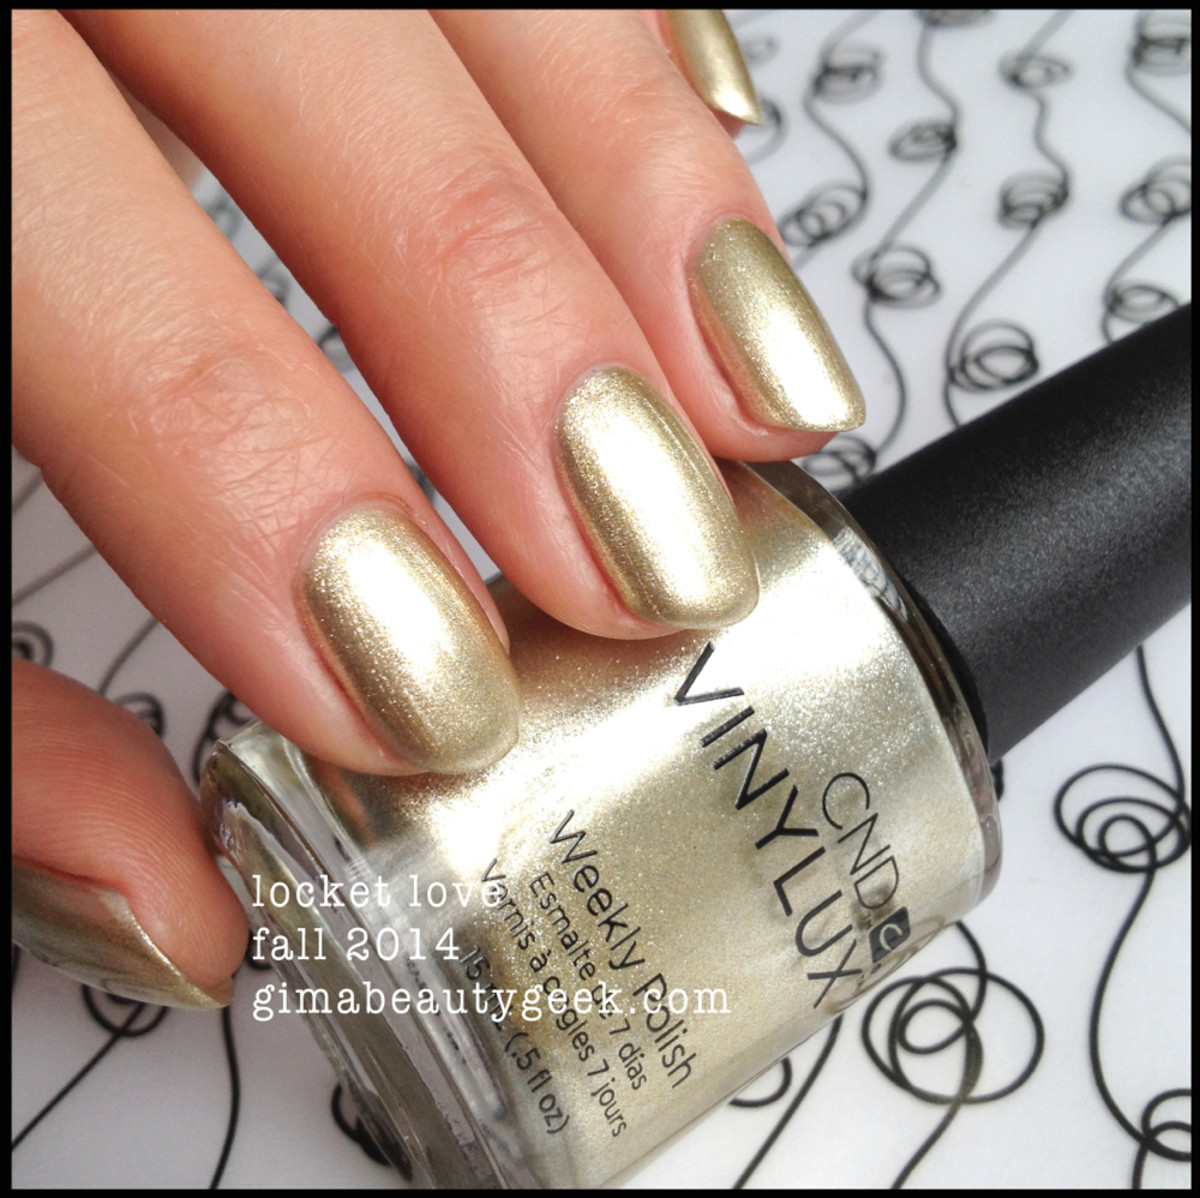 CND Vinylux Locket Love Modern Folklore Fall 2014